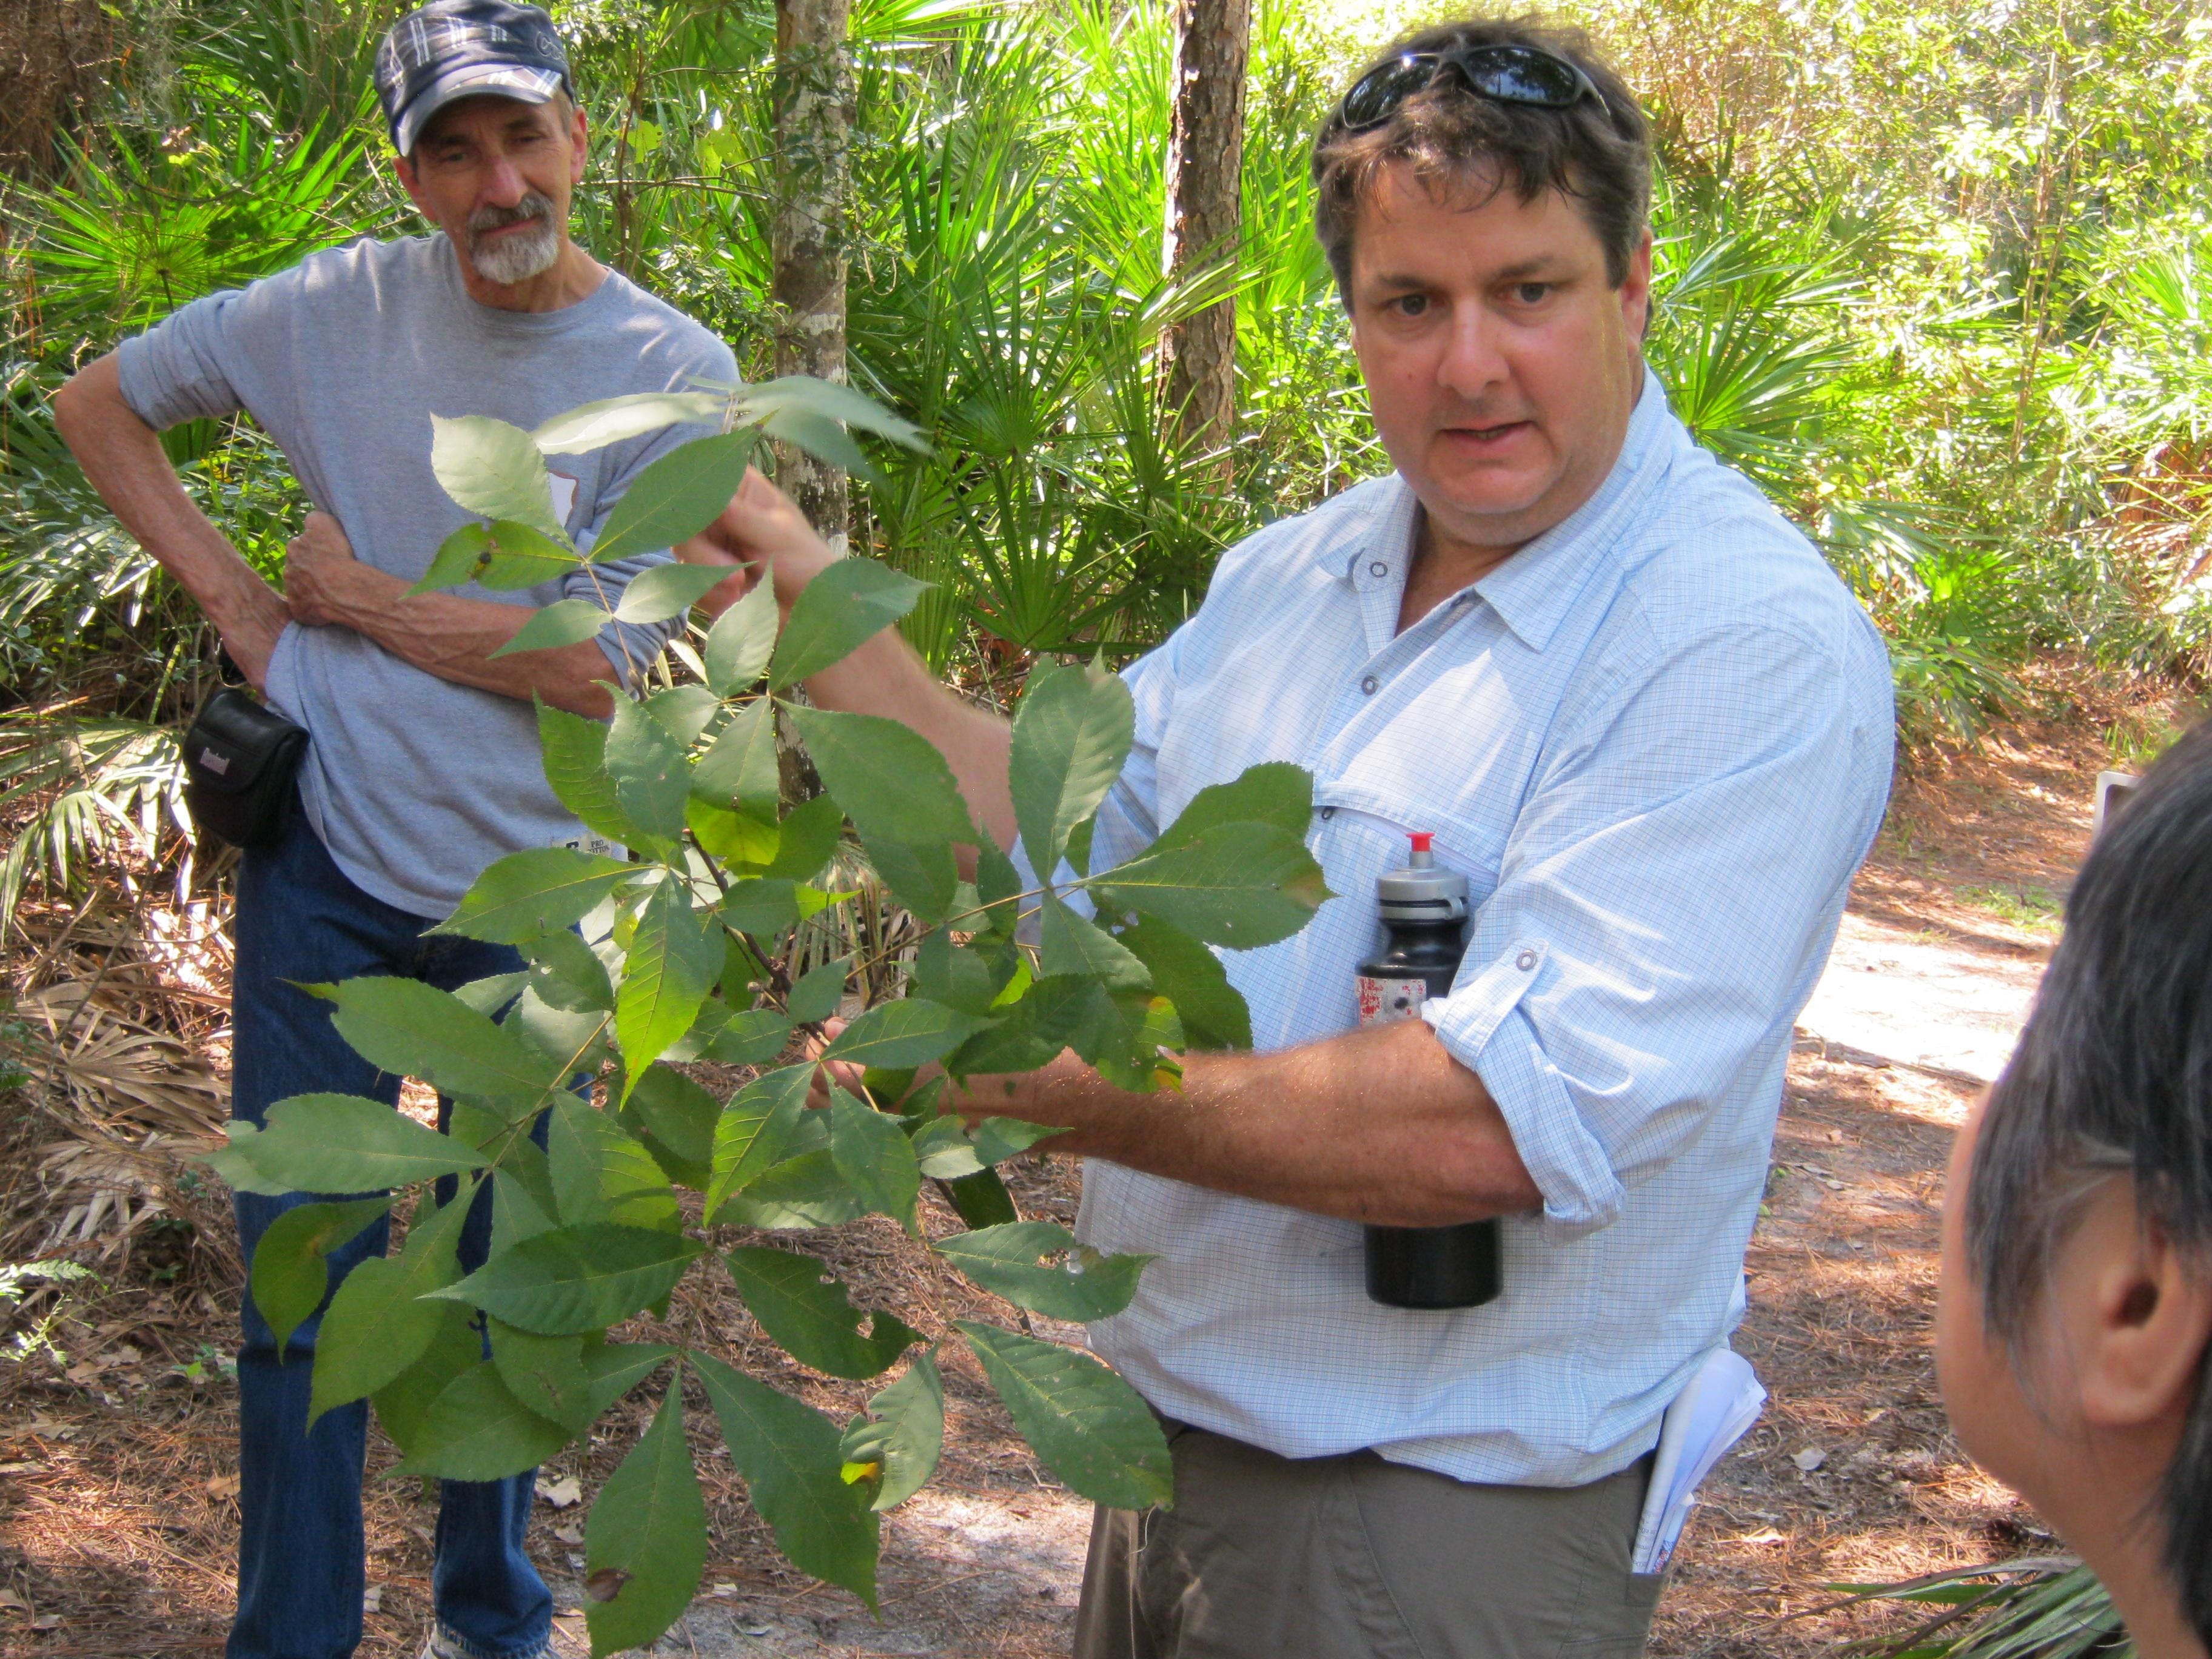 Forest Stewardship Field Day: Forest Plant Id